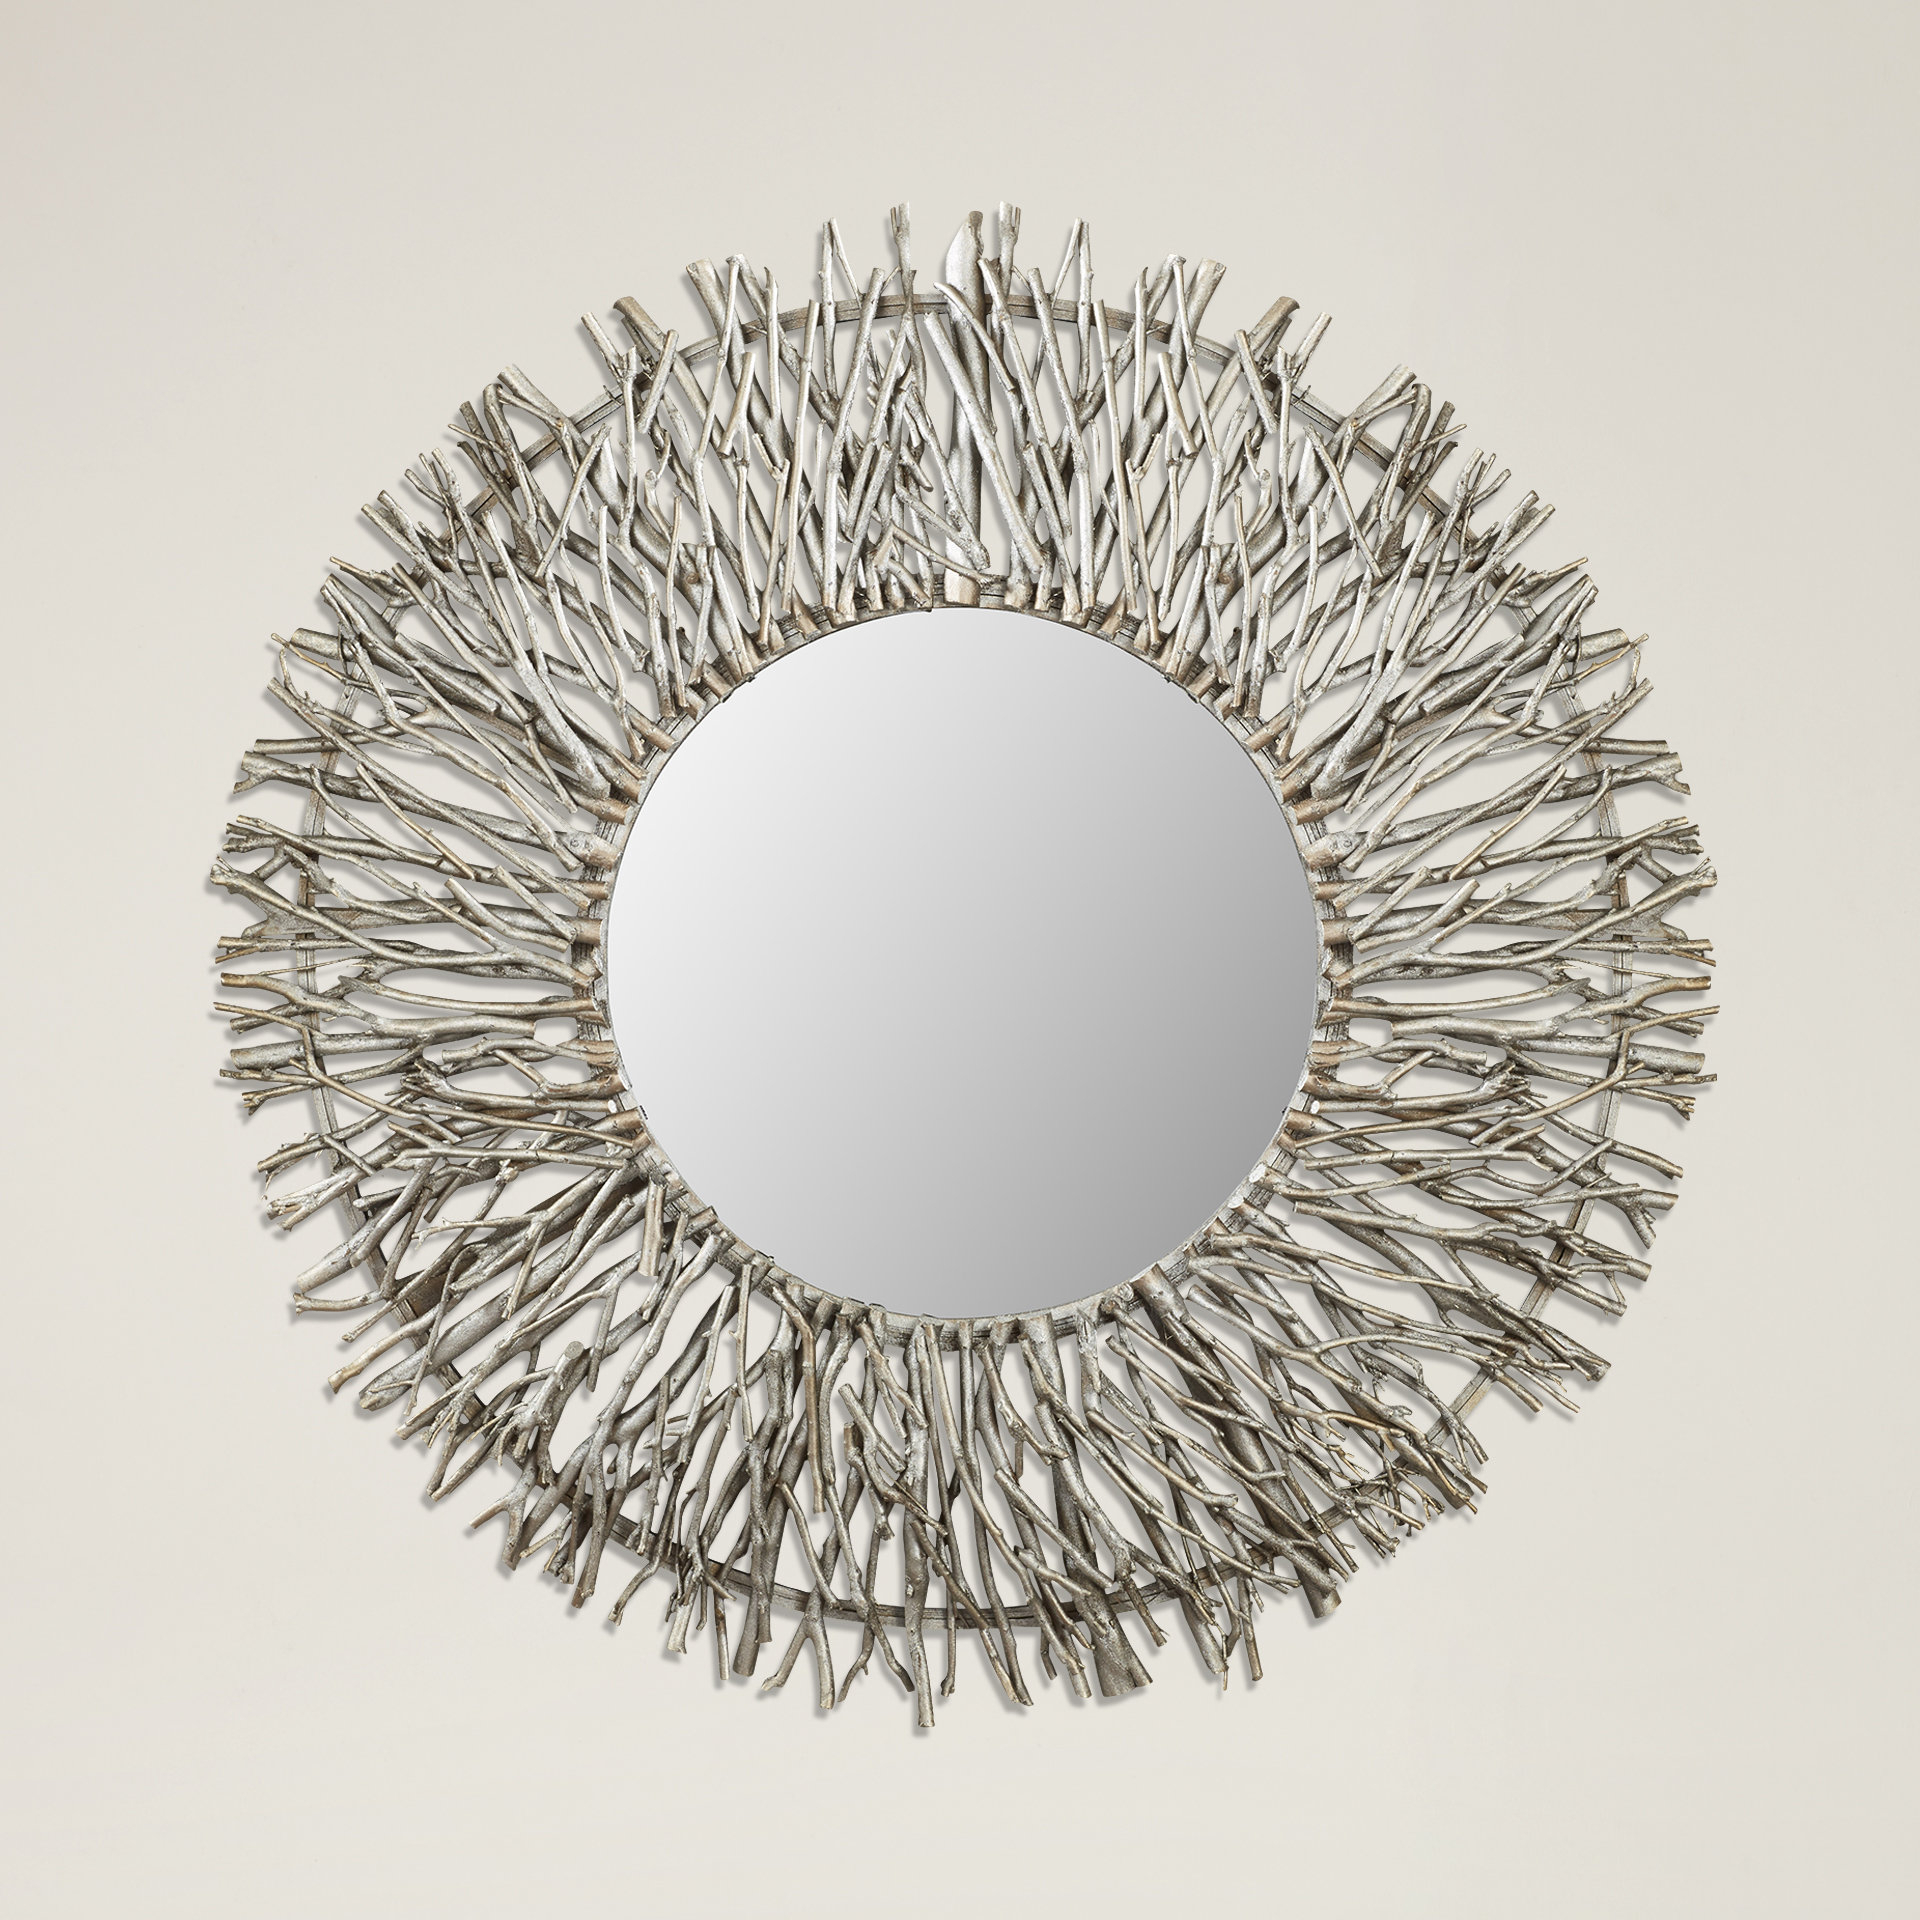 Cromartie Tree Branch Wall Mirrors Within Most Popular Cromartie Tree Branch Wall Mirror (Gallery 1 of 20)